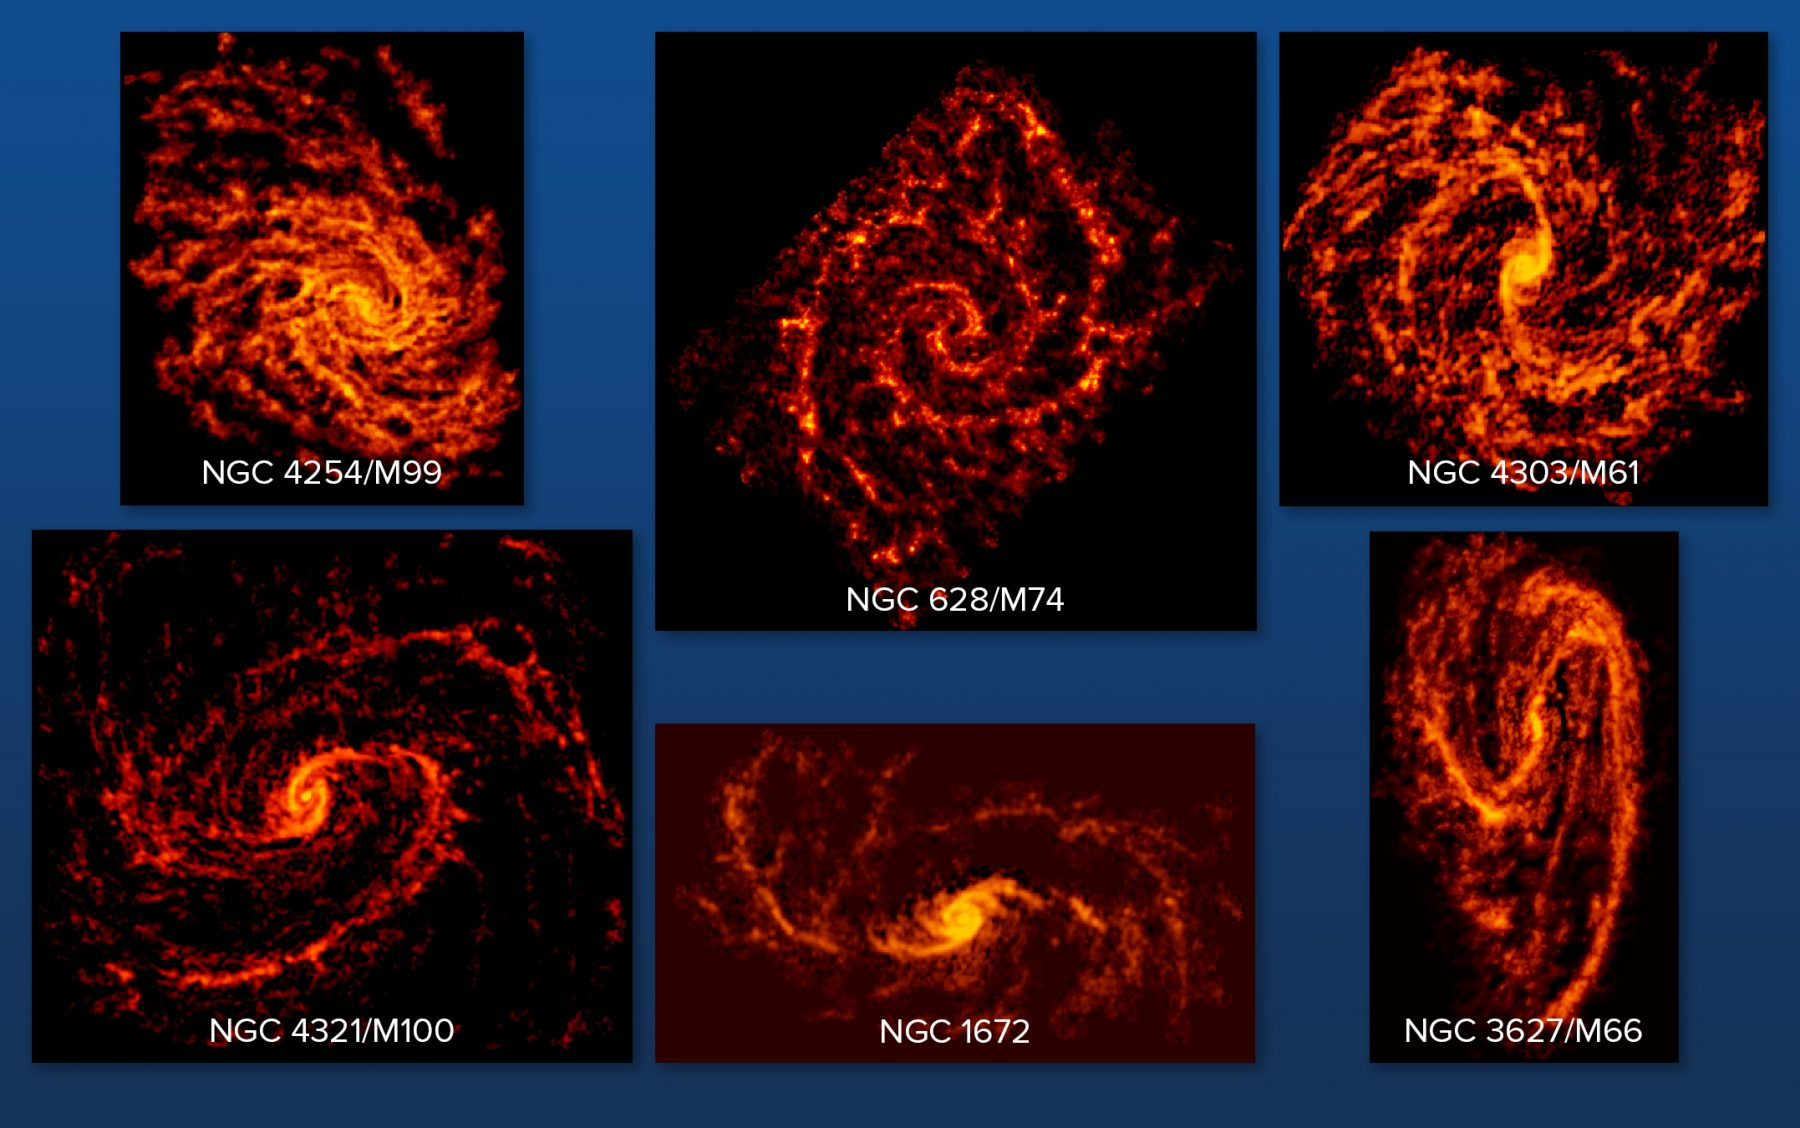 Ultra-sharp images of galaxies